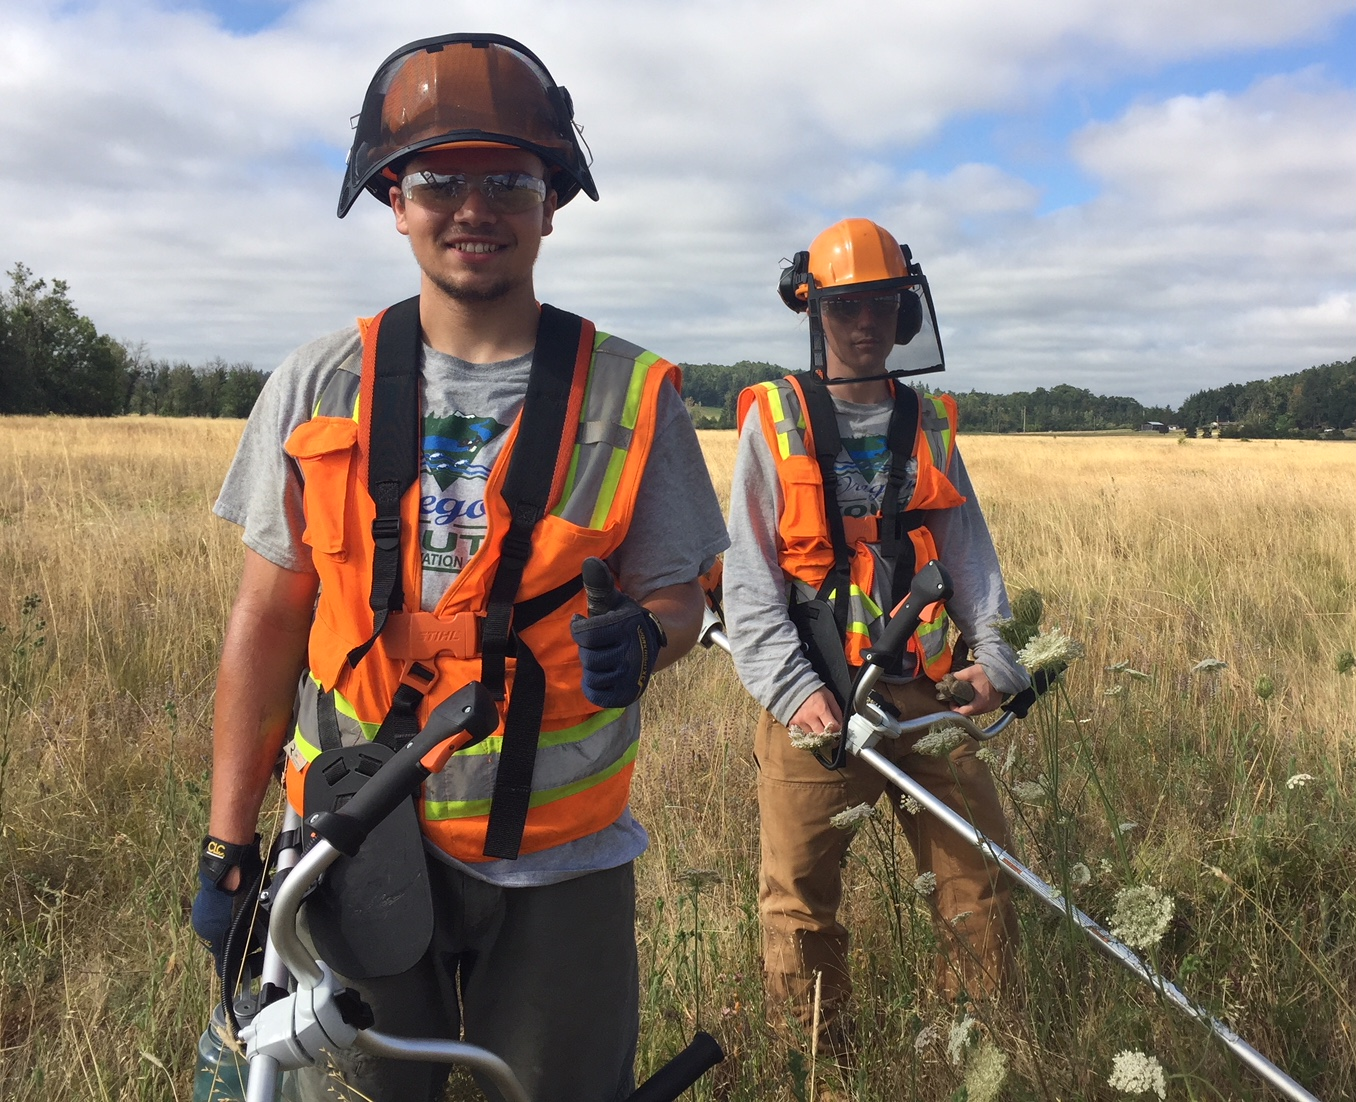 2 members of Looking Glass' Lane Metro Youth Corps summer work crew show off their brush cutters as they trim invasive species from fields in West Eugene.